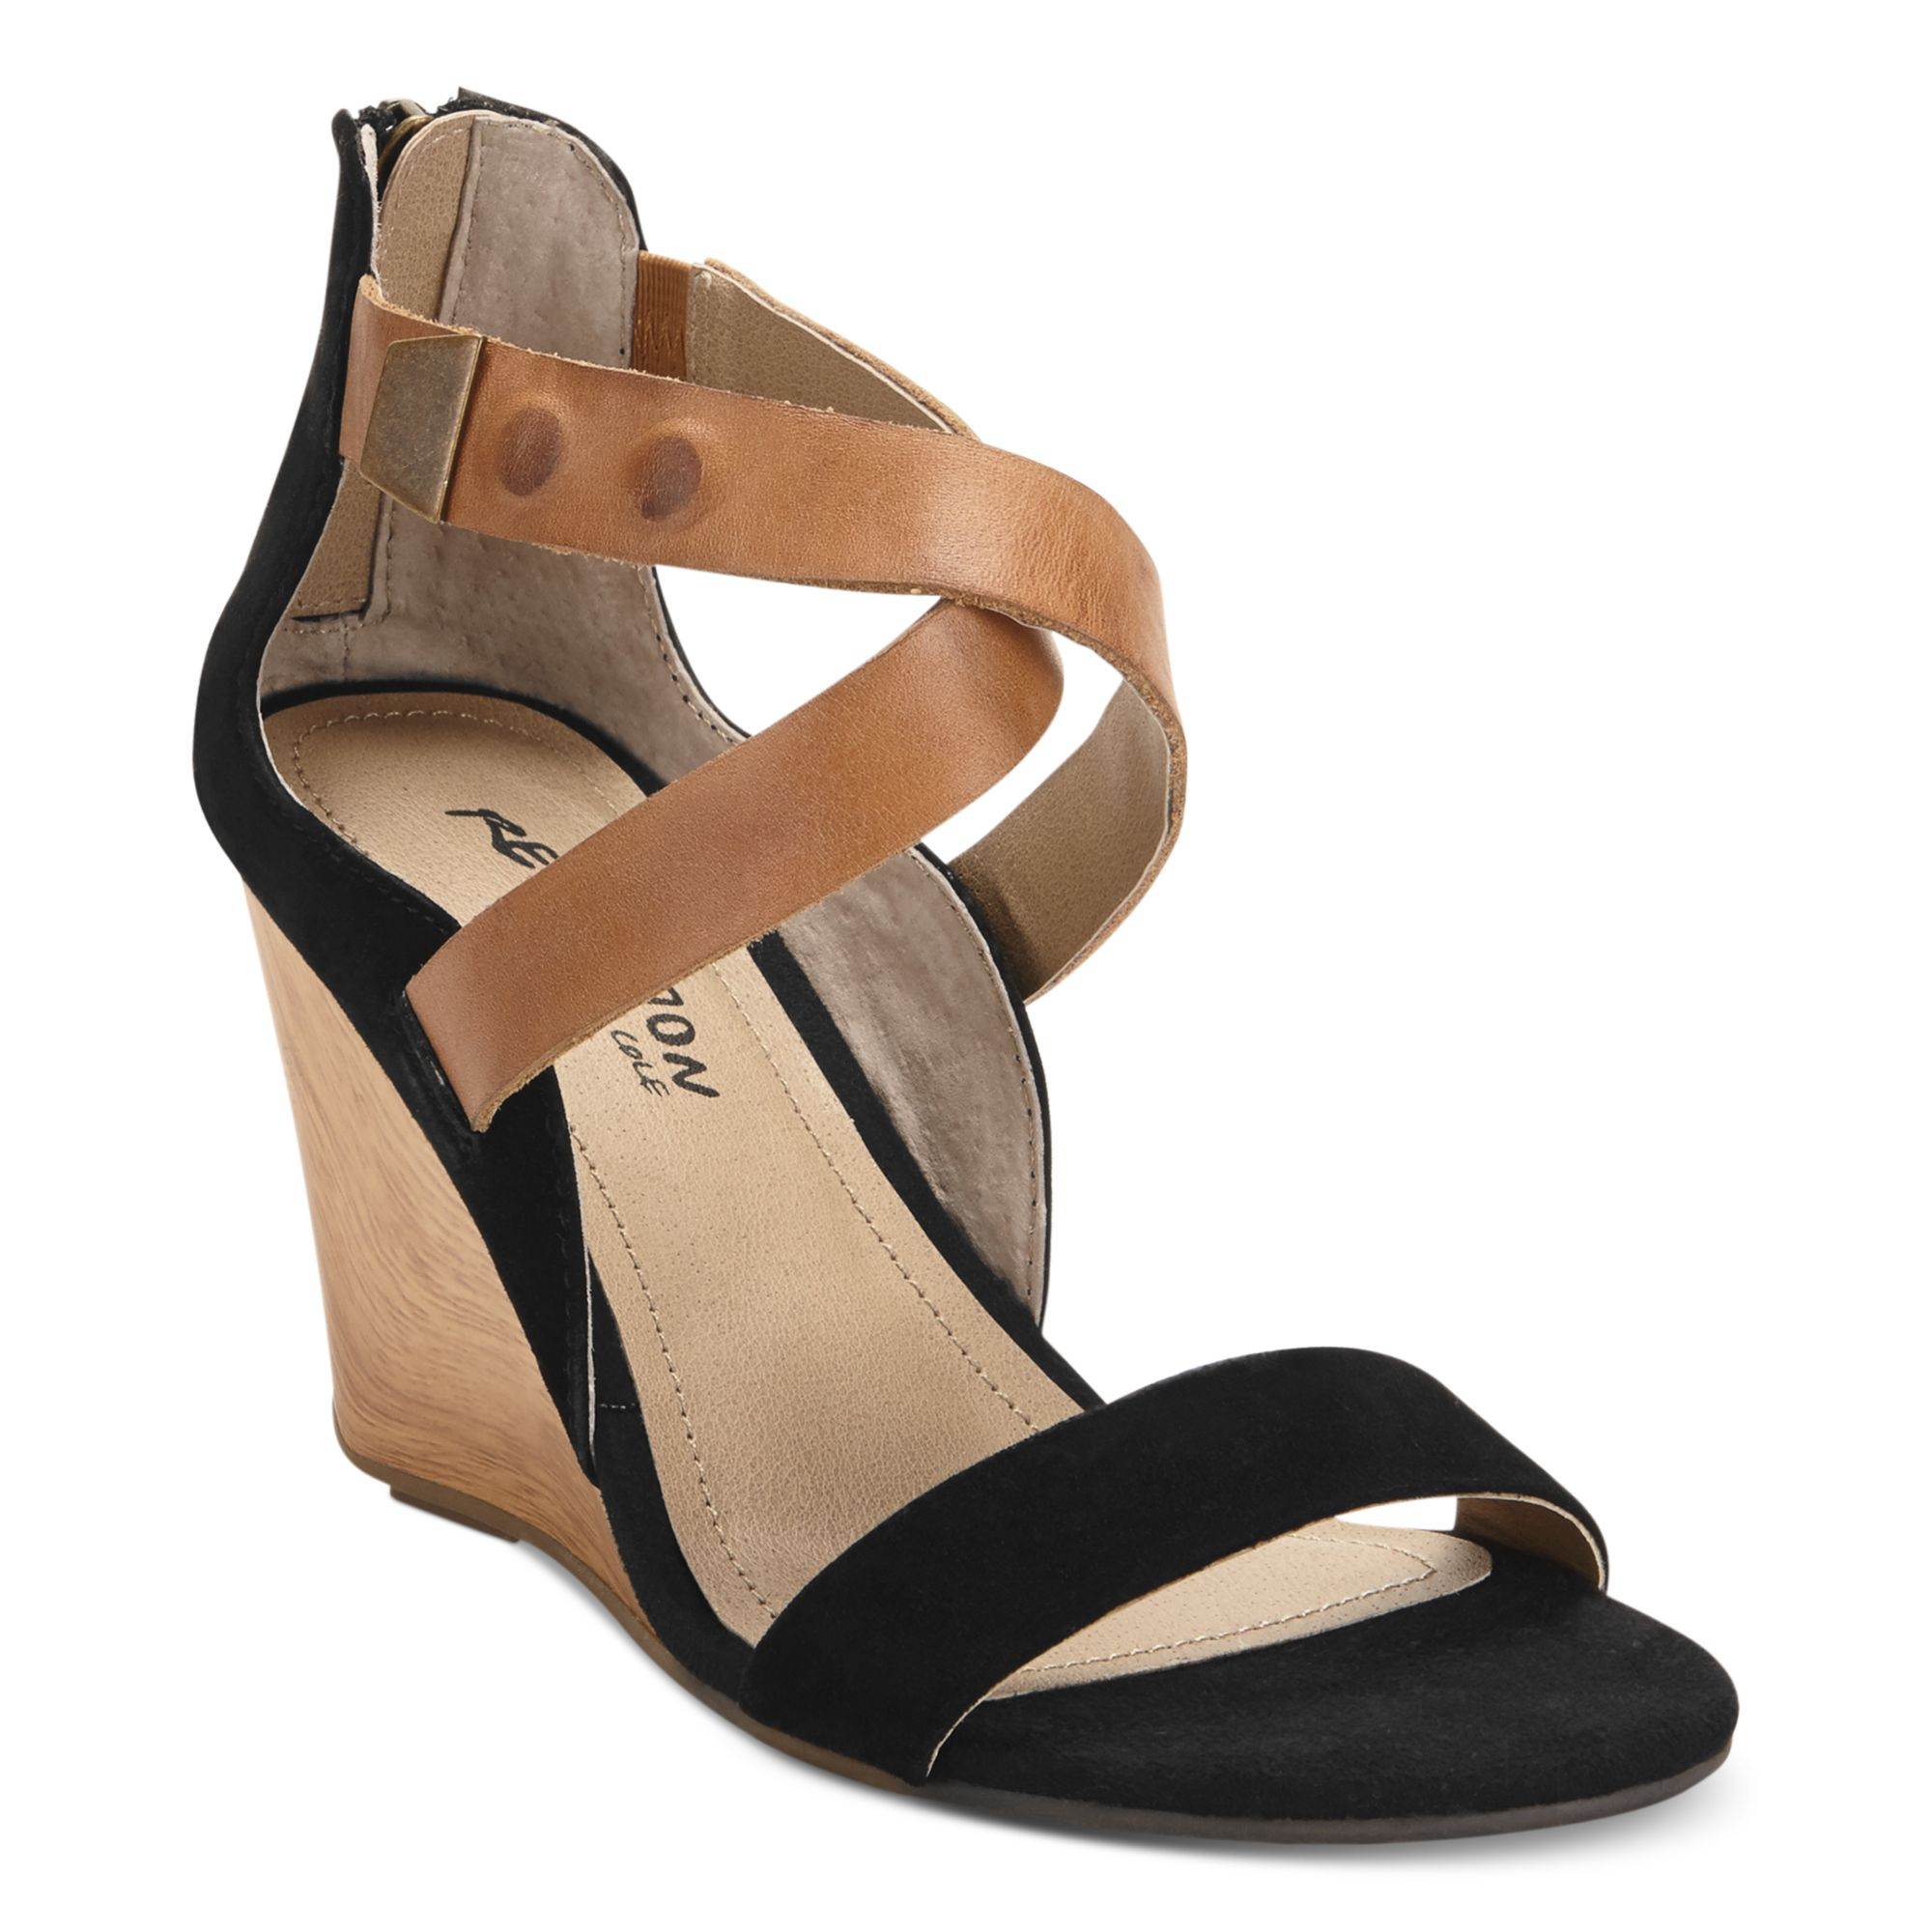 f6345adf6aa7 Lyst - Kenneth Cole Reaction Oh Ava Wedge Sandals in Black